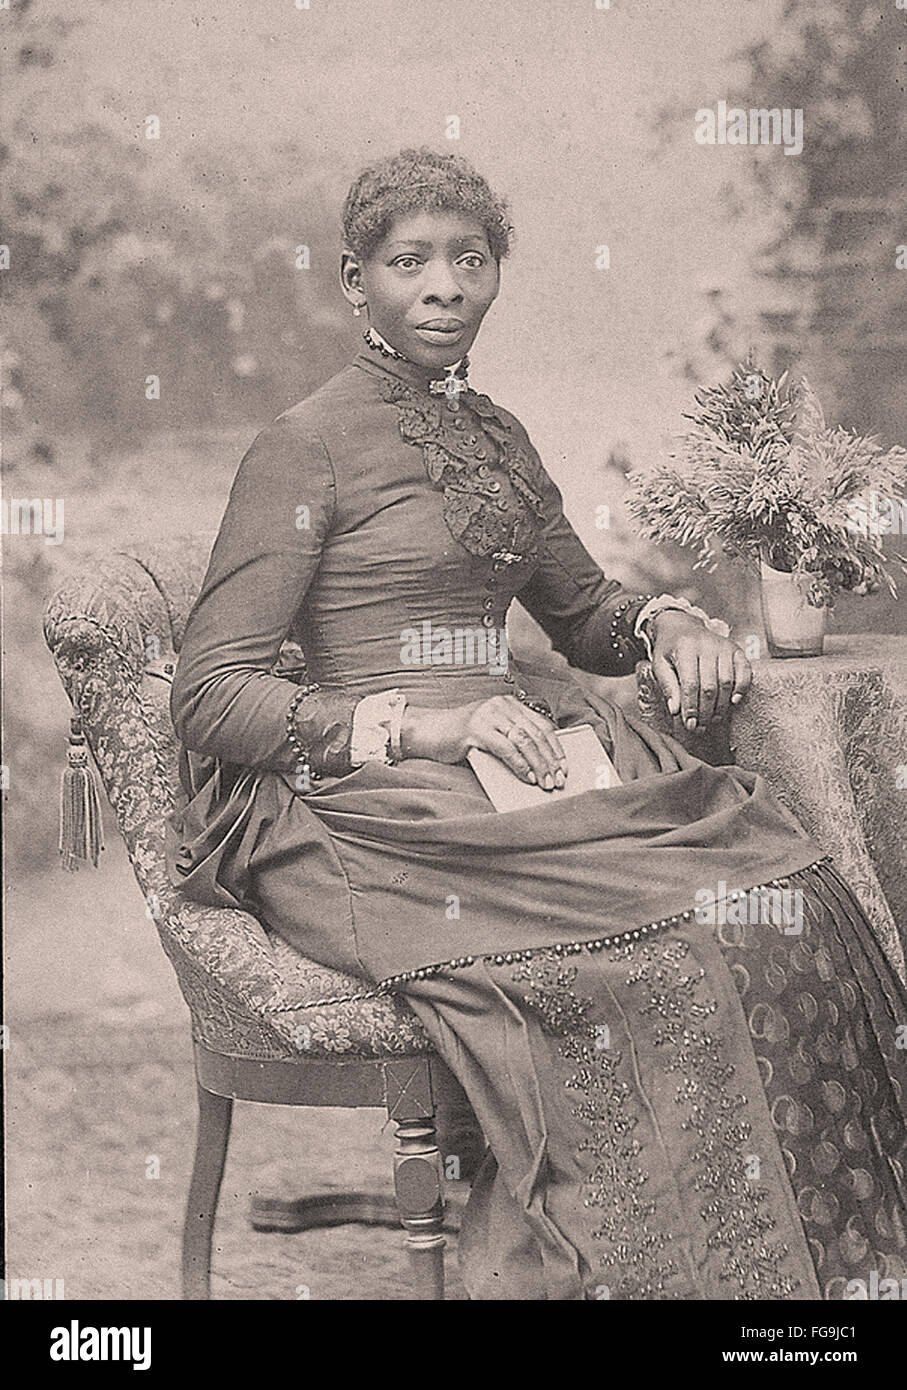 Portrait of a Afro-american woman in the late 19 th century - Stock Image